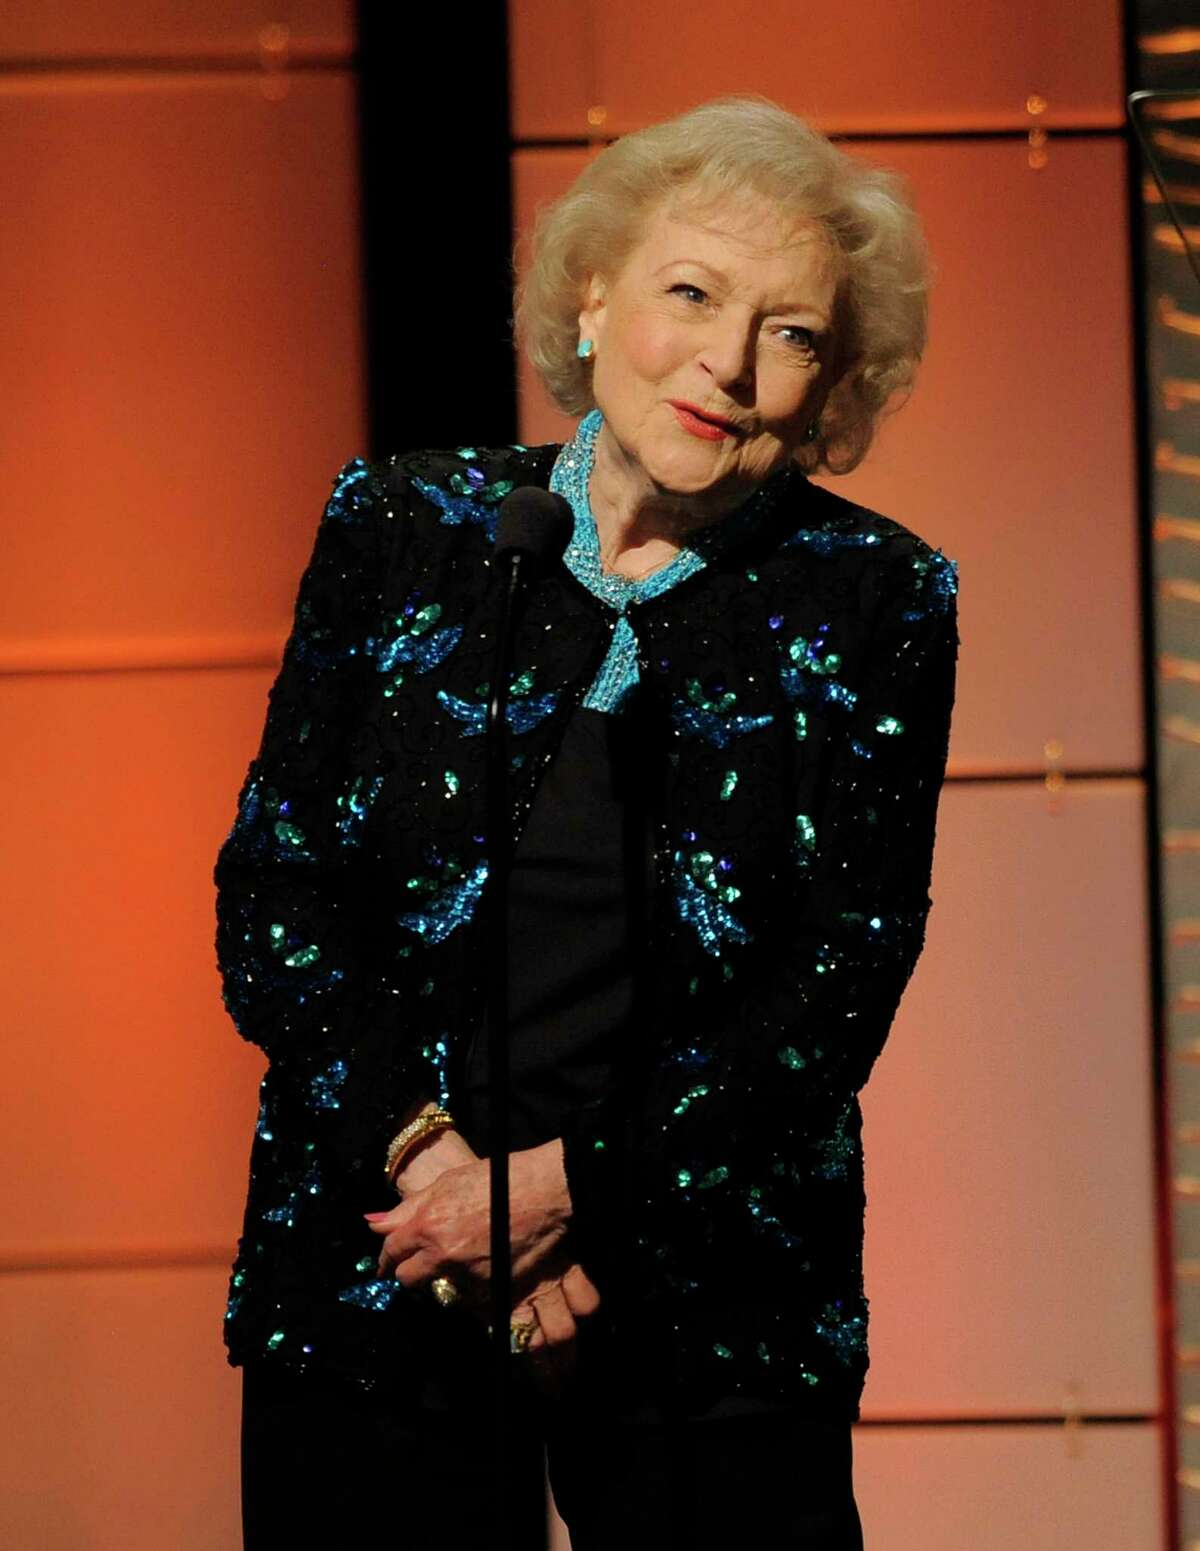 Betty White presents the lifetime achievement award at the 40th Annual Daytime Emmy Awards on Sunday, June 16, 2013, in Beverly Hills, Calif. (Photo by Chris Pizzello/Invision/AP)